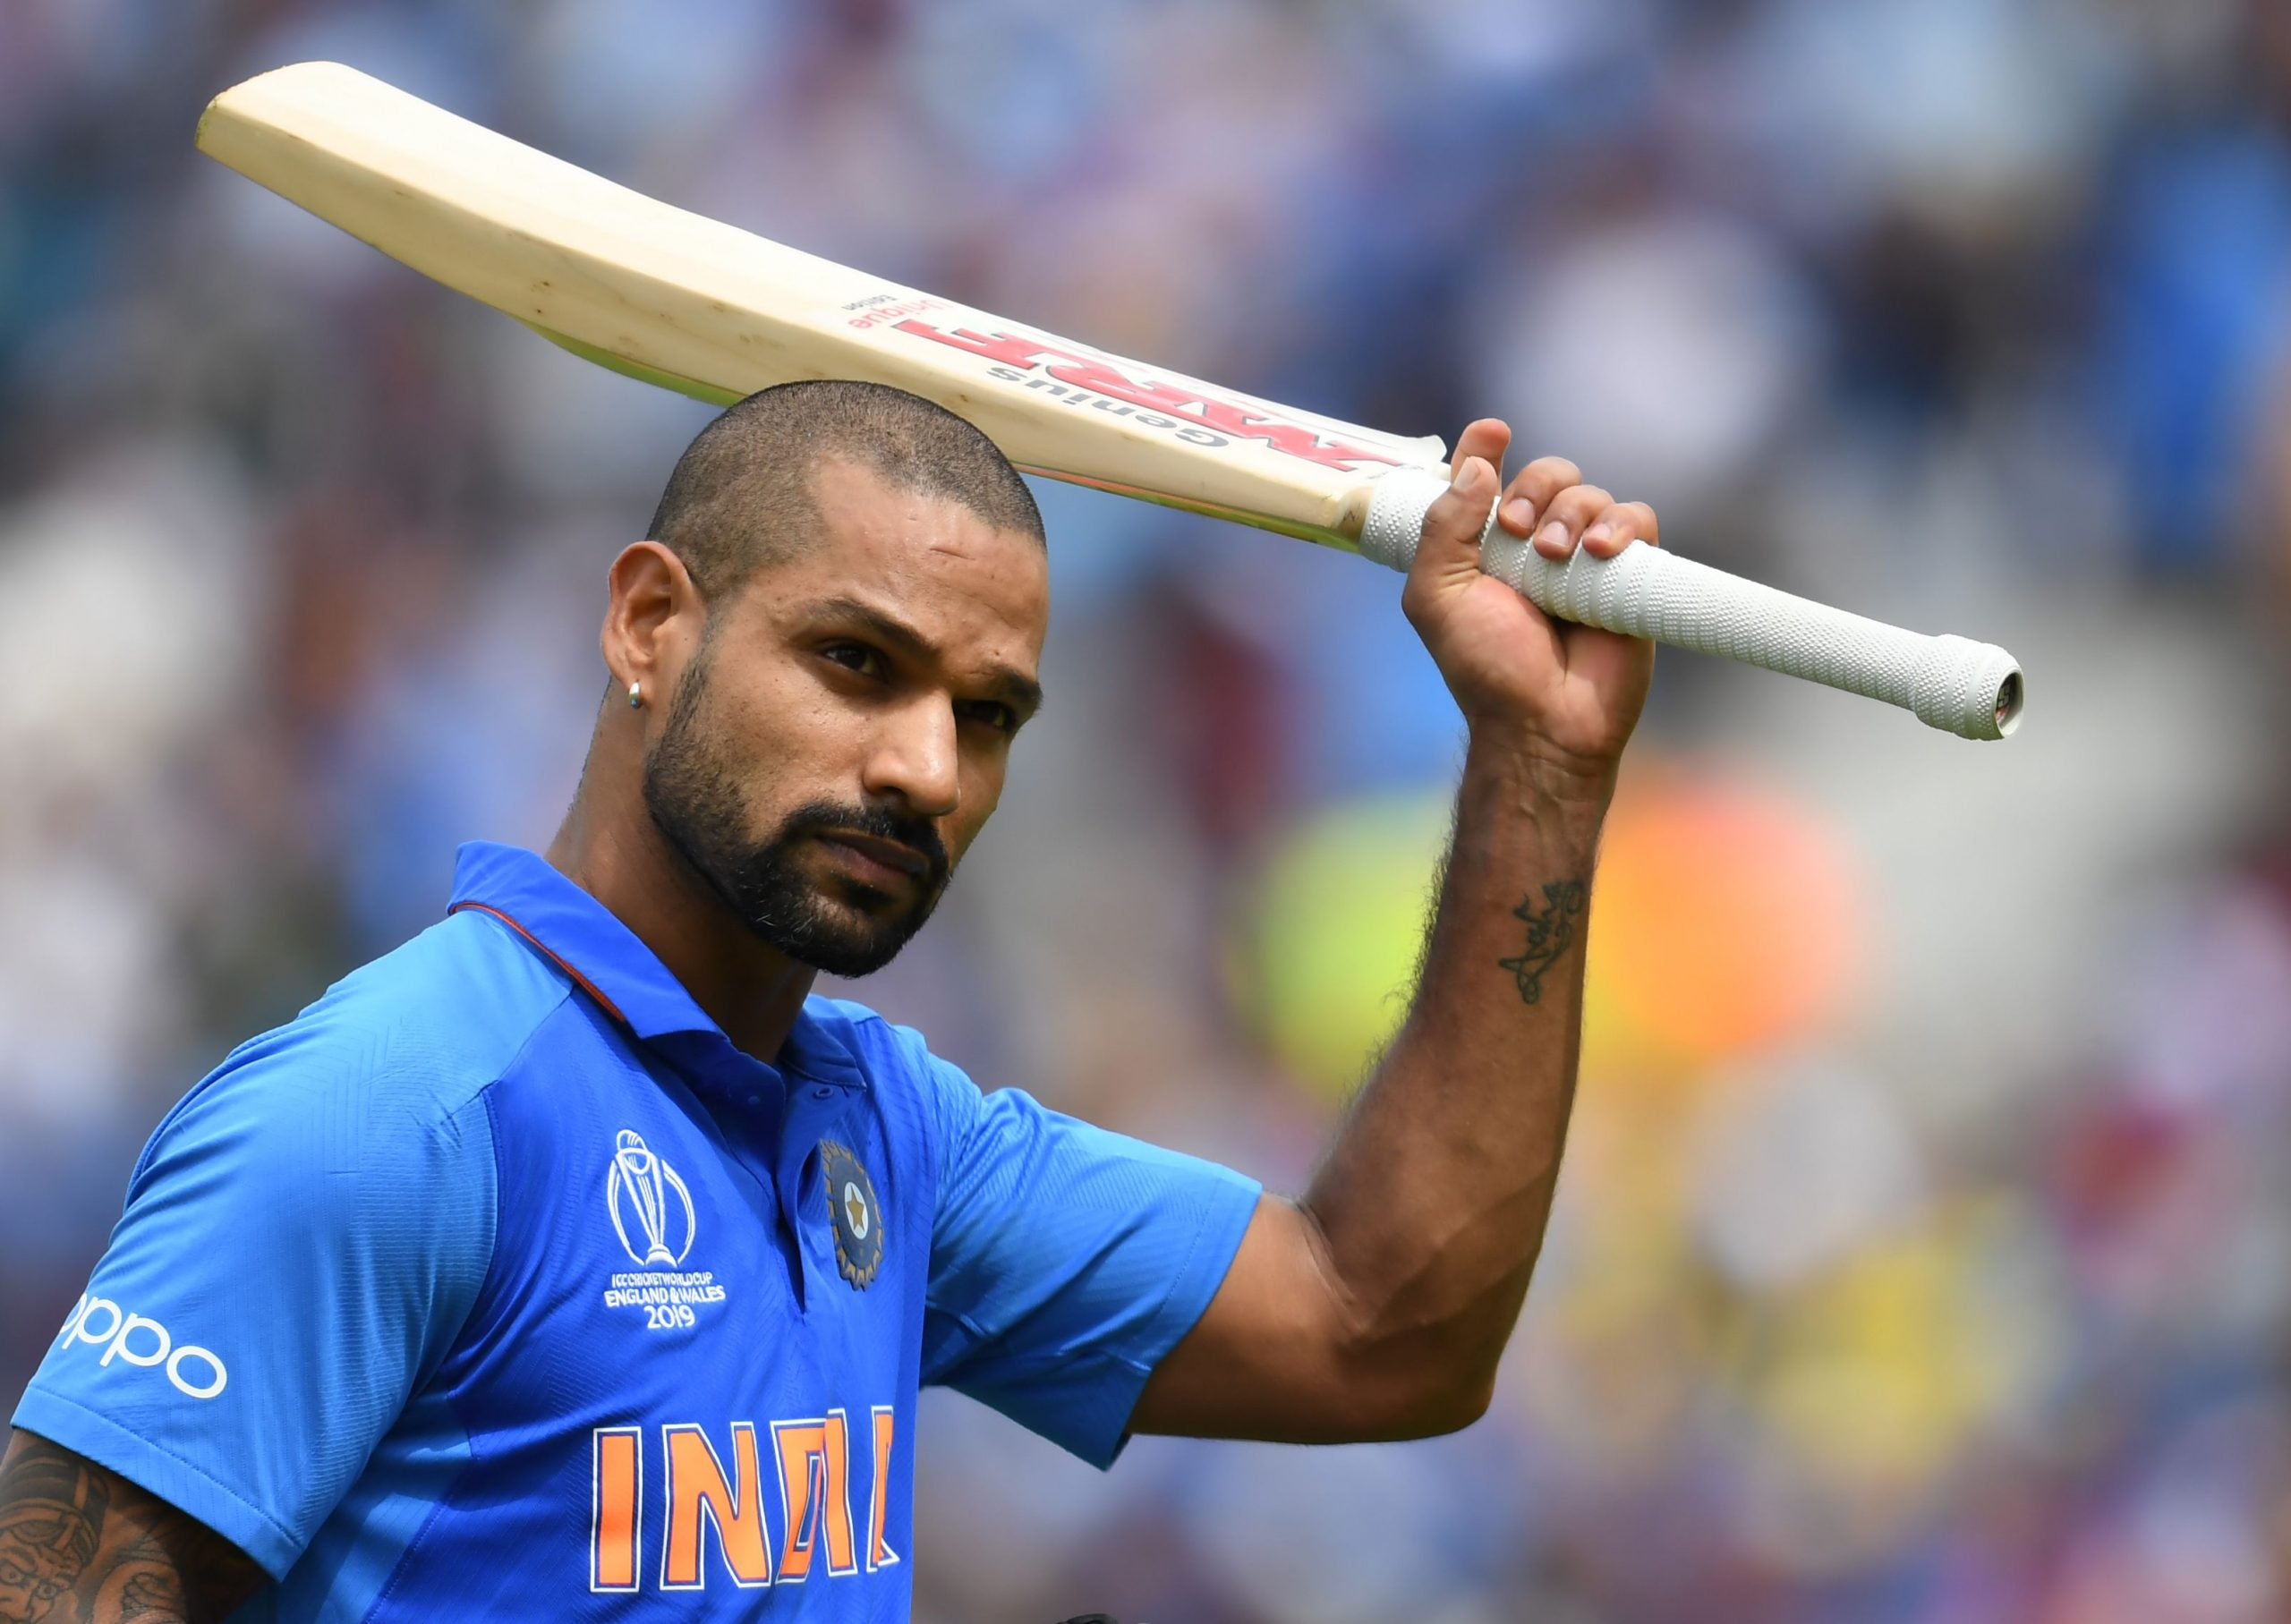 India's Shikhar Dhawan raises his bat to the crowd as he walks back to the pavilion after his dismissal during the 2019 Cricket World Cup group stage match between India and Australia at The Oval in London on June 9, 2019. (Photo by Dibyangshu SARKAR / AFP) / RESTRICTED TO EDITORIAL USE        (Photo credit should read DIBYANGSHU SARKAR/AFP via Getty Images)